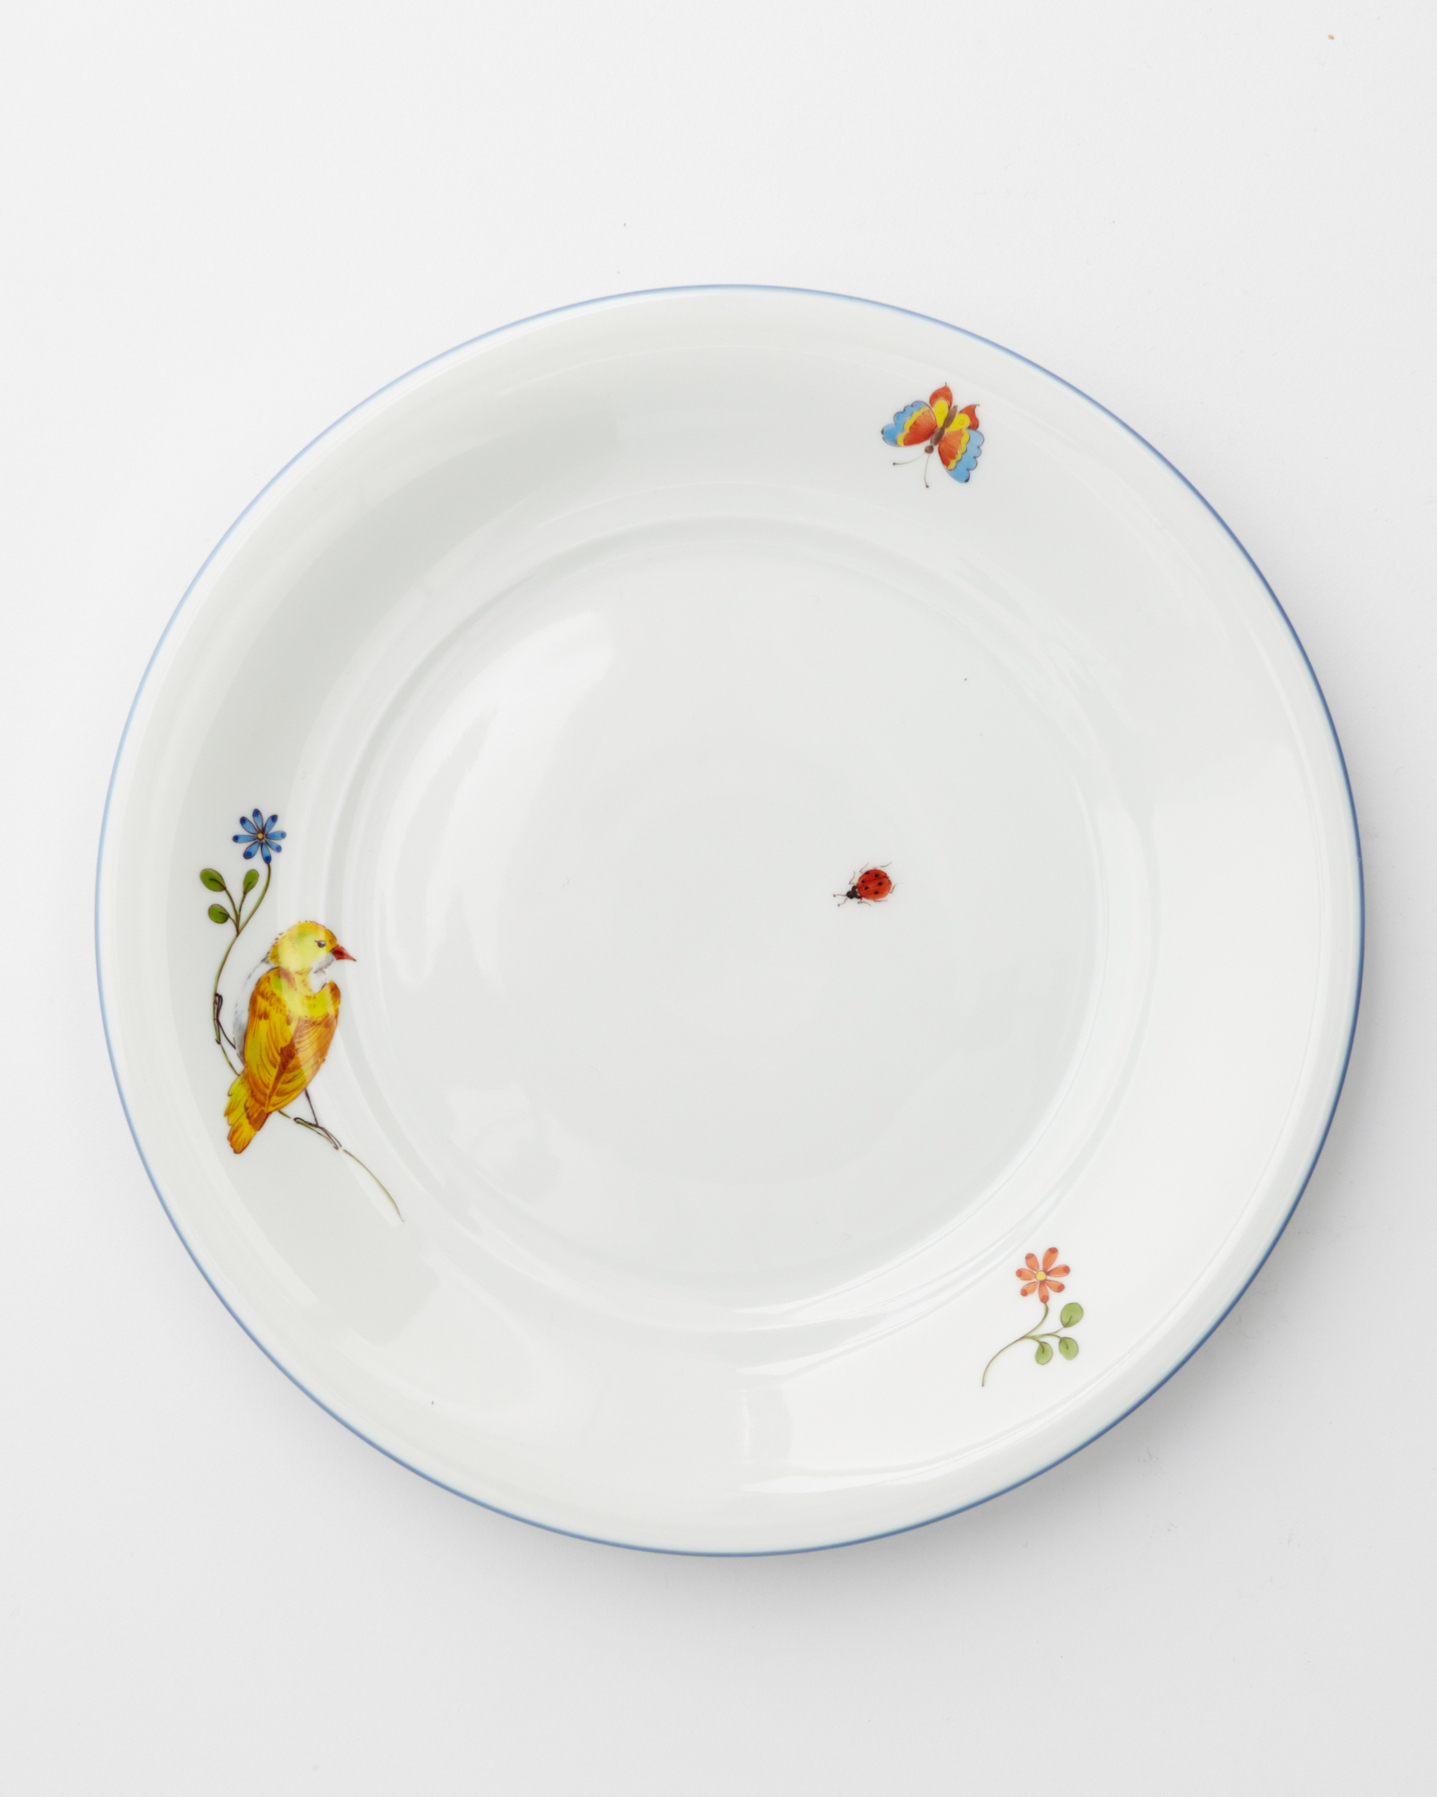 china-registry-vintage-charm-neue-gallery-dinnerware-001-d111317-1014.jpg